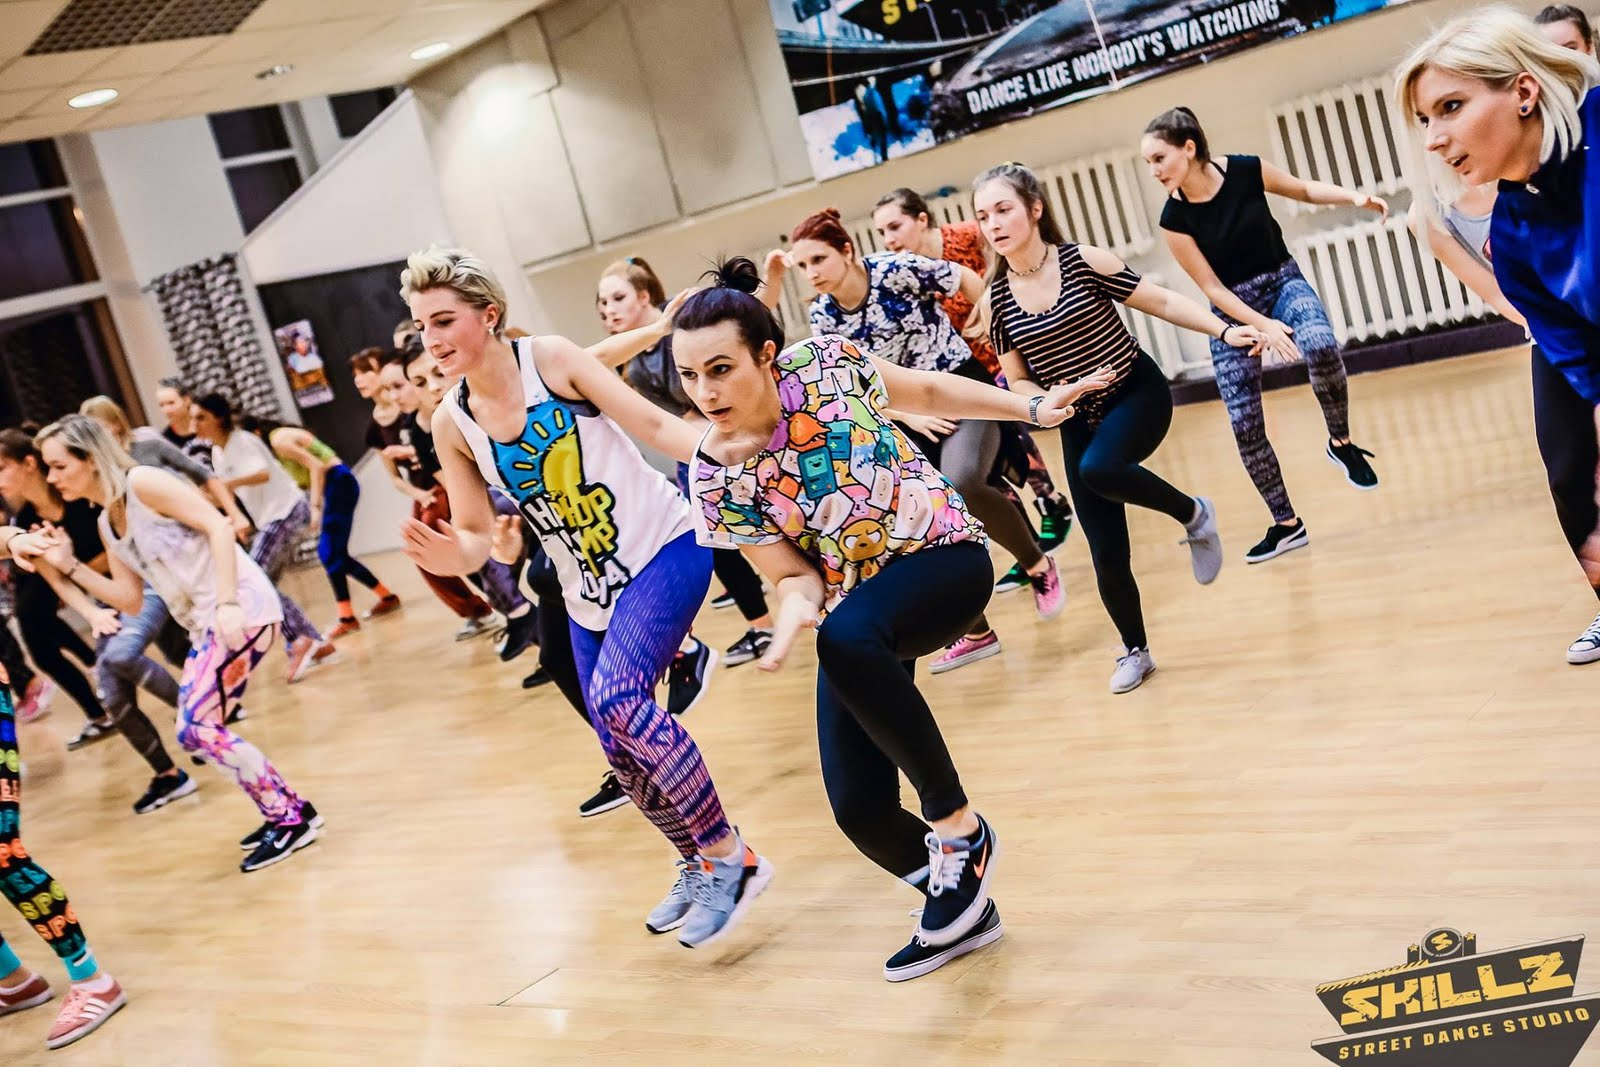 Dancehall workshop with Jiggy (France) - 24.jpg